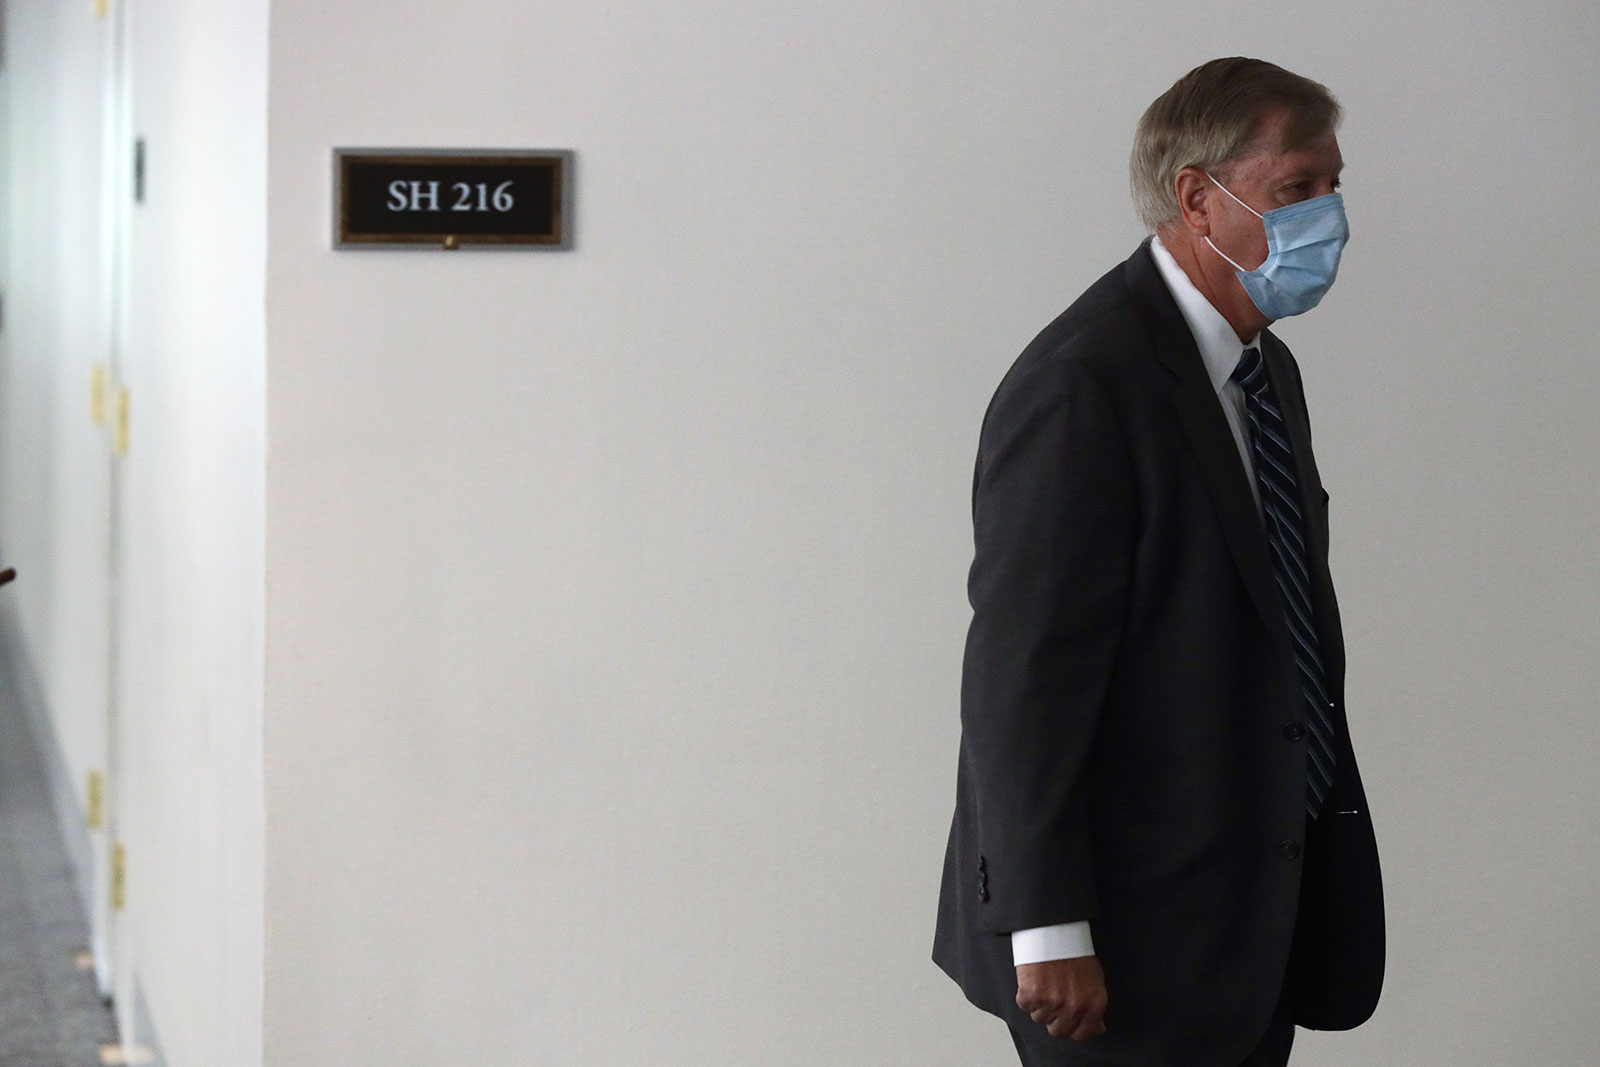 Sen. Lindsey Graham arrives at the Hart Senate Office Building on May 12.